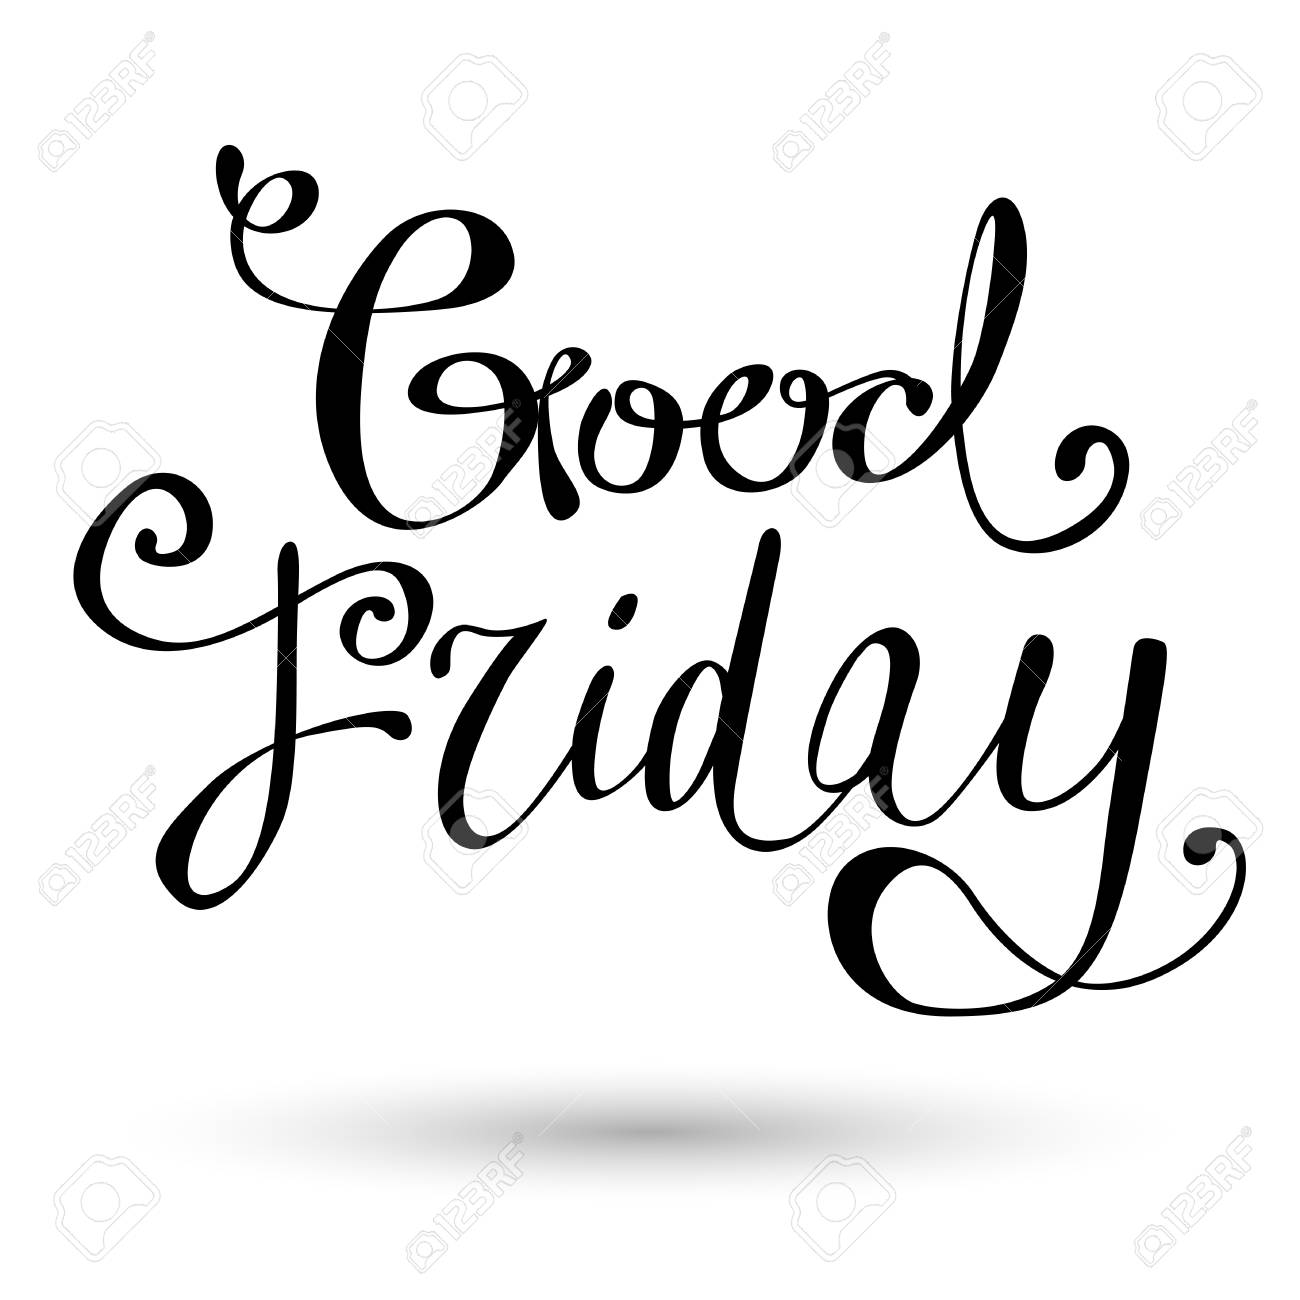 Image result for free good friday clipart